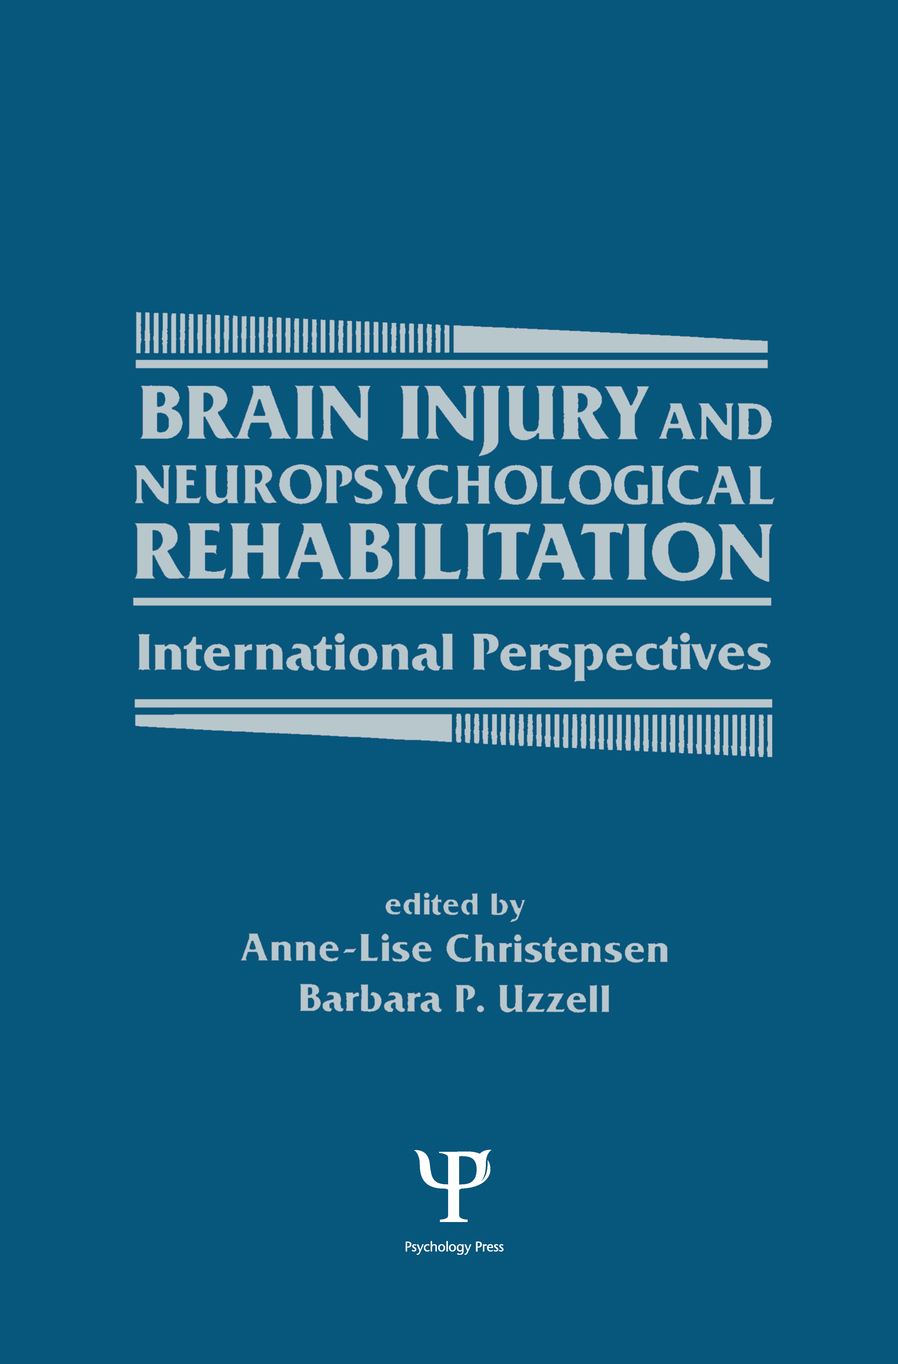 Brain Injury and Neuropsychological Rehabilitation International Perspectives